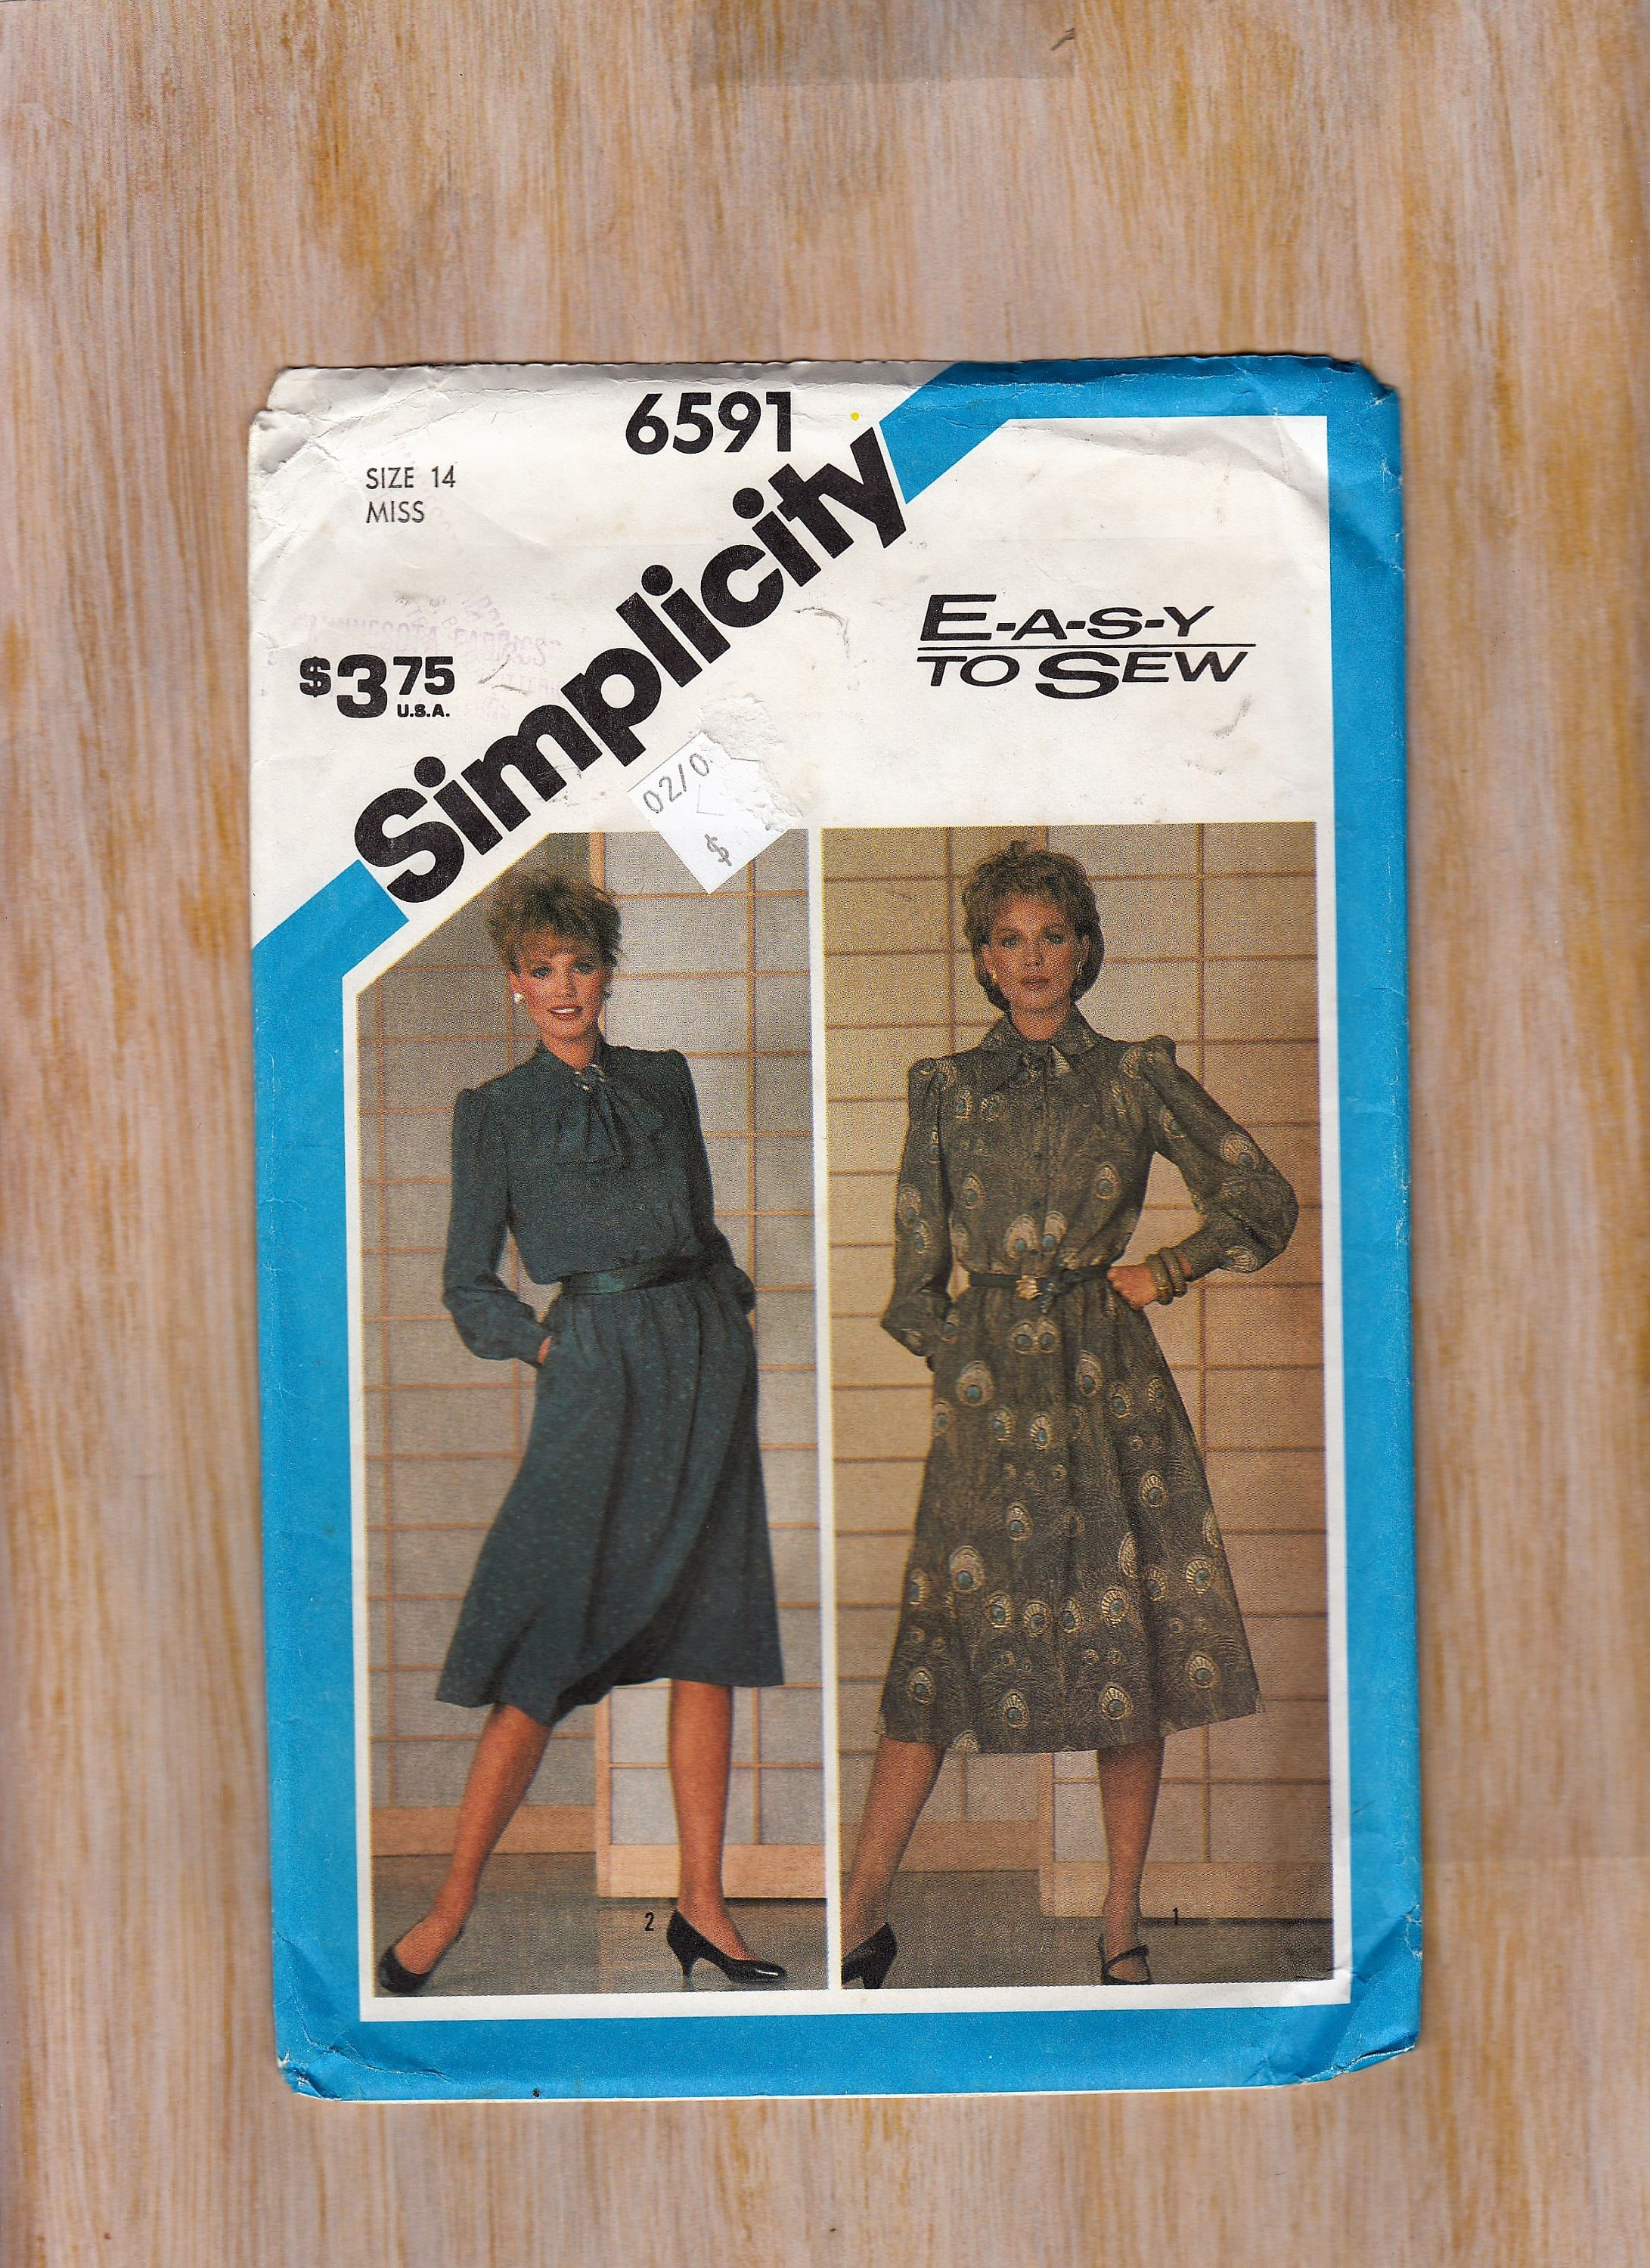 Womens sewing pattern simplicity 6591 long sleeve dress cinched womens sewing pattern simplicity 6591 long sleeve dress cinched waist size 14 bust 36 waist jeuxipadfo Choice Image